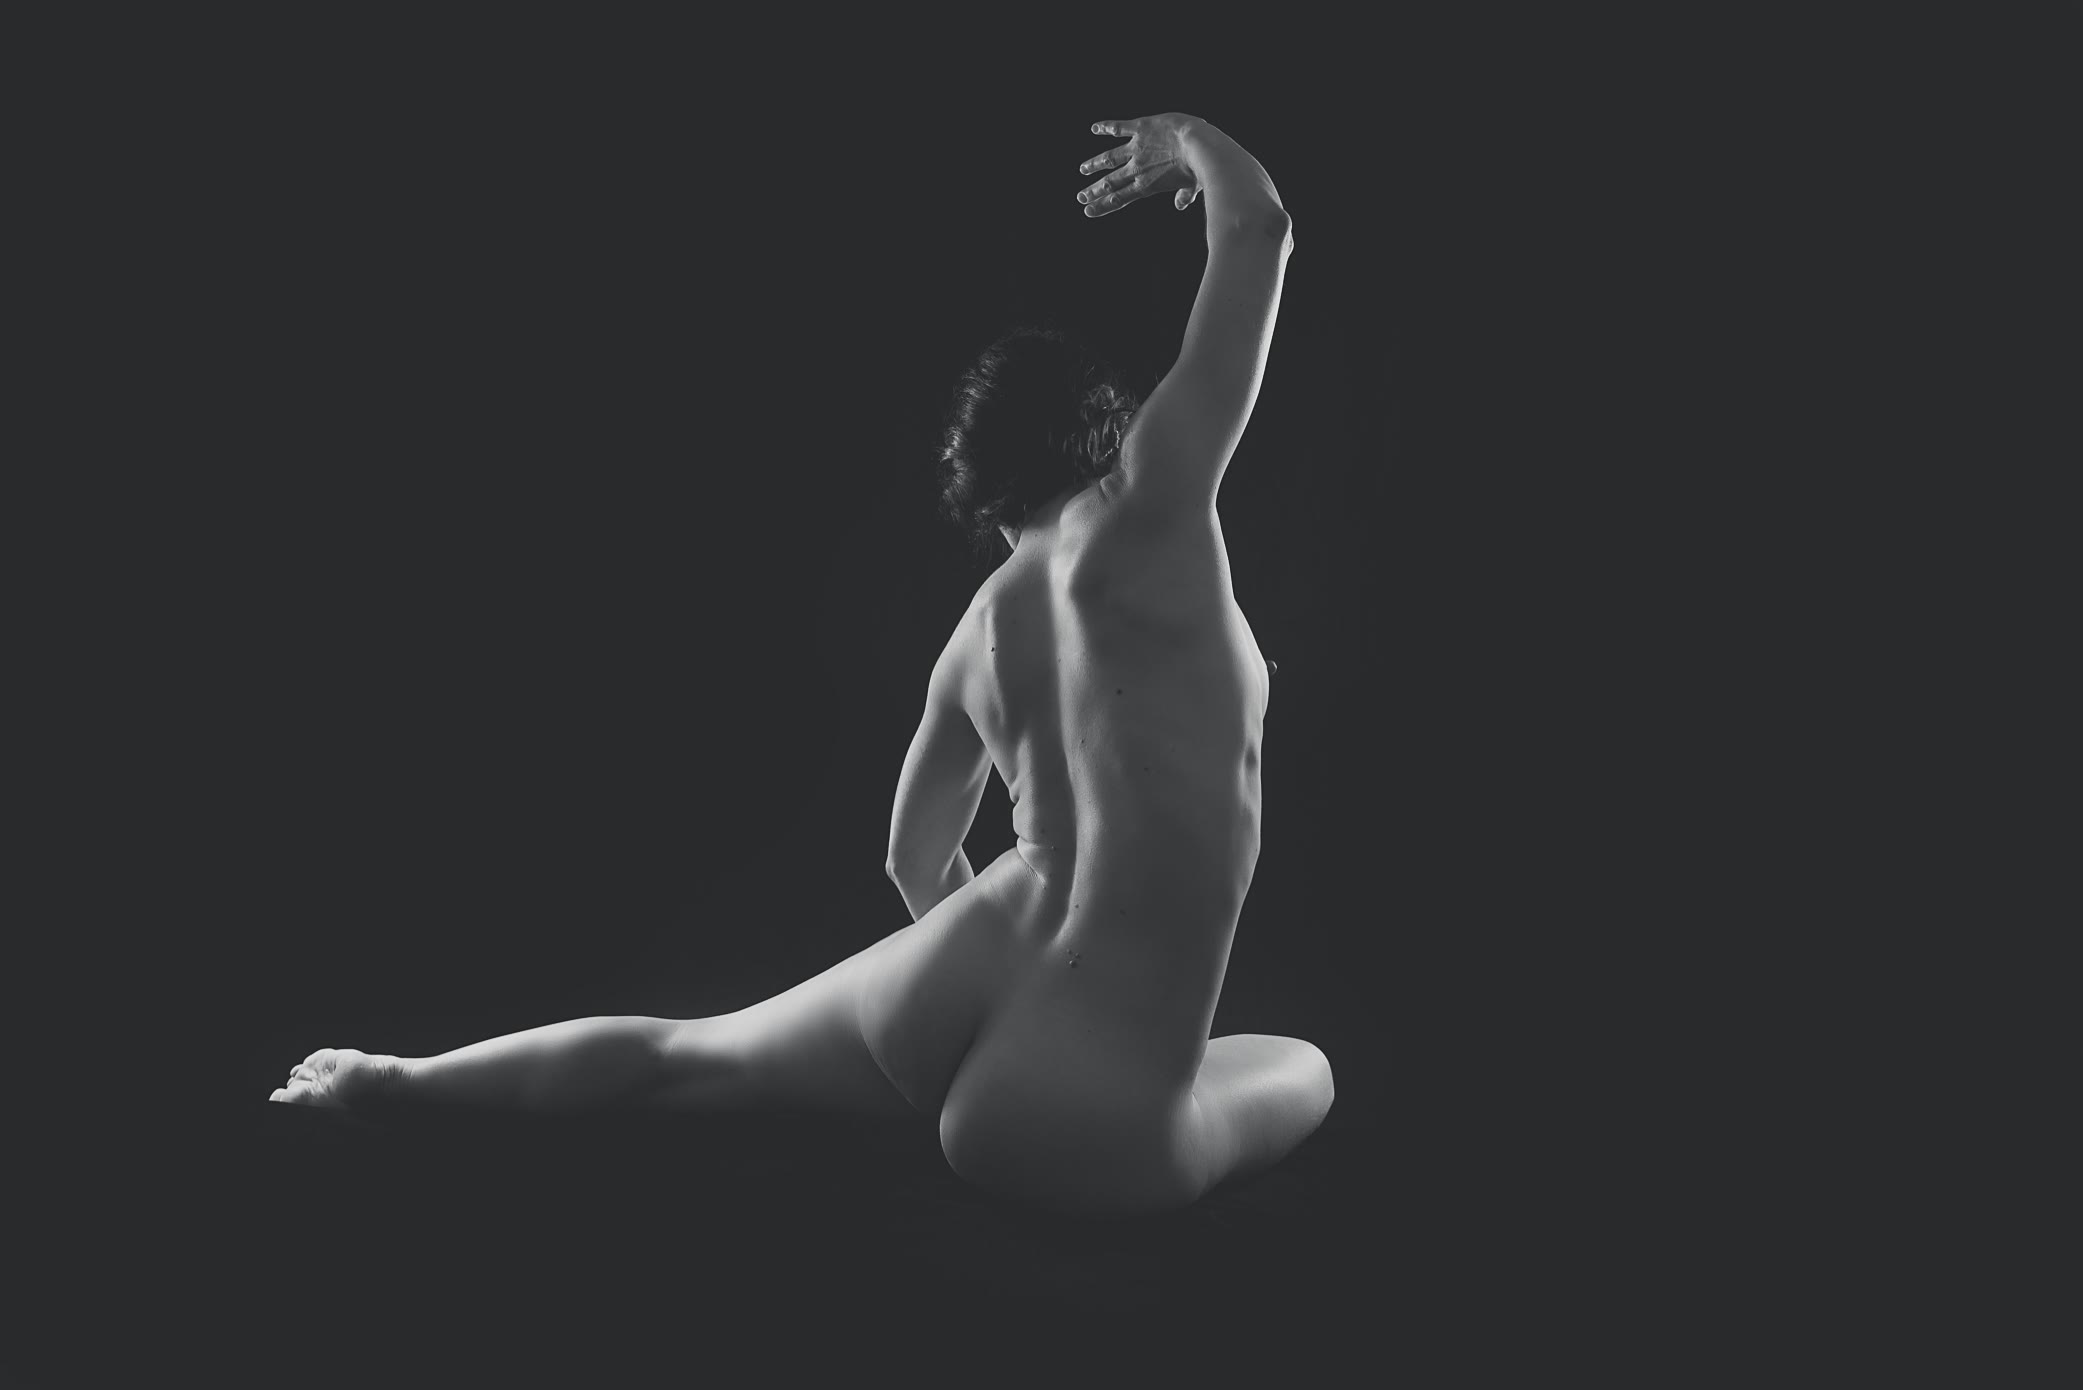 Nude female back view stretching by Gpix Photo